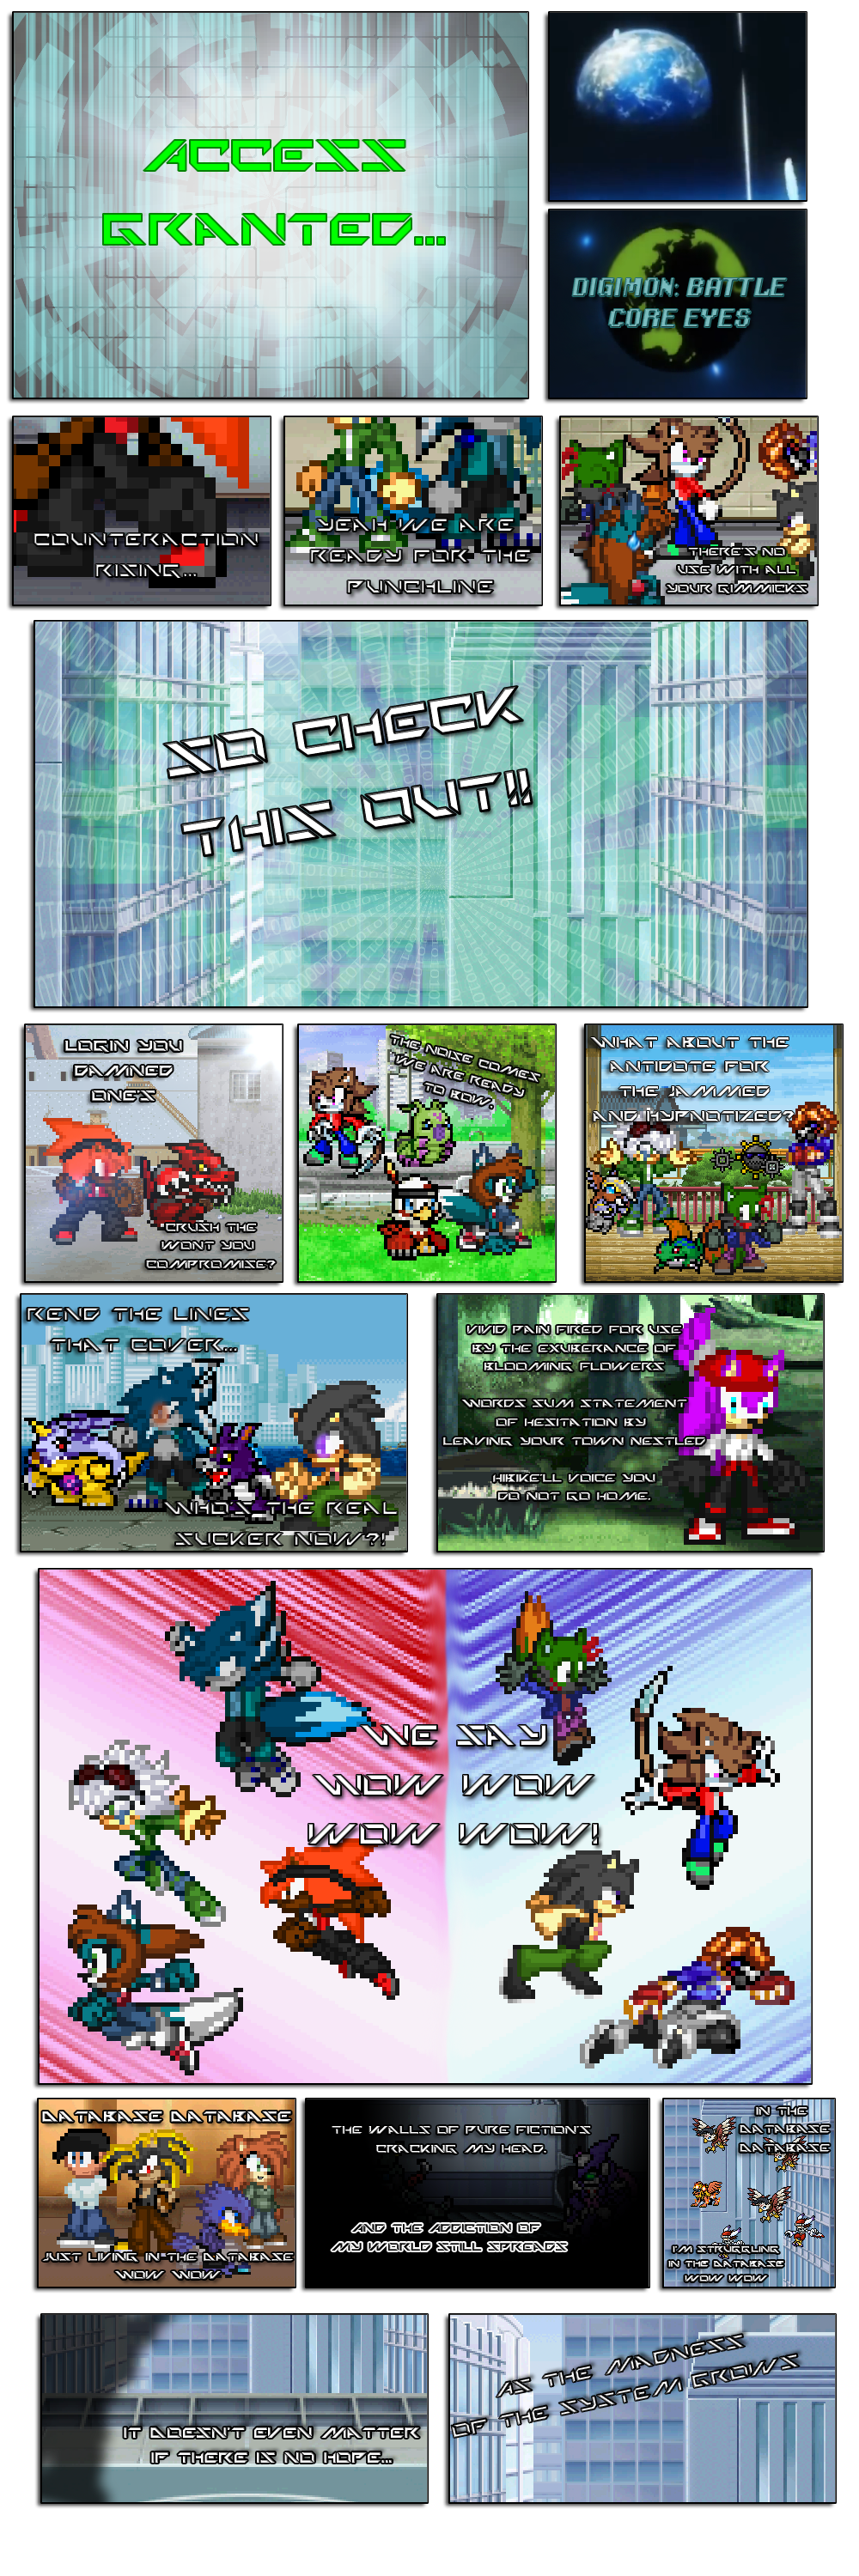 Digimon Battle: Core Eyes Opening by FrostRaven32